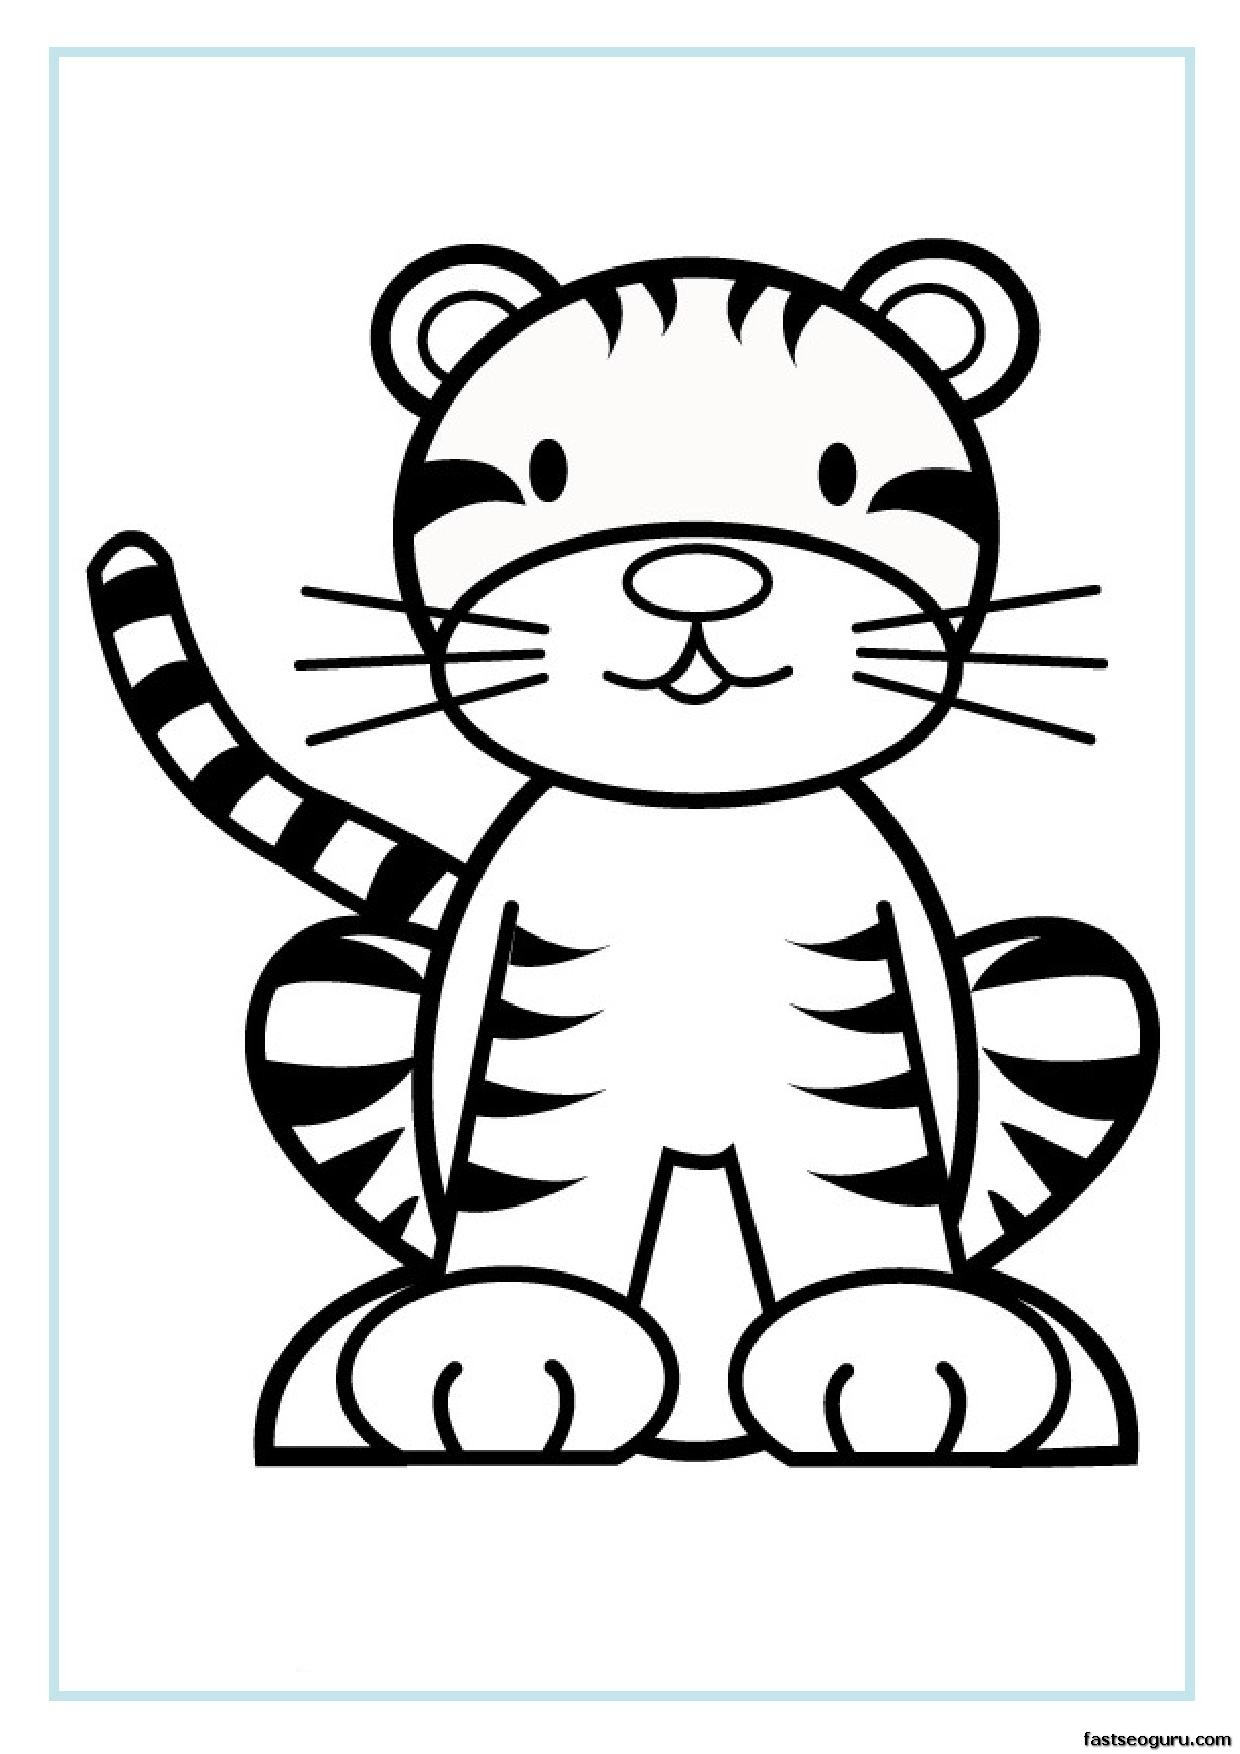 photo about Tiger Printable referred to as Absolutely free printable animal tiger little one colouring sheet for young children